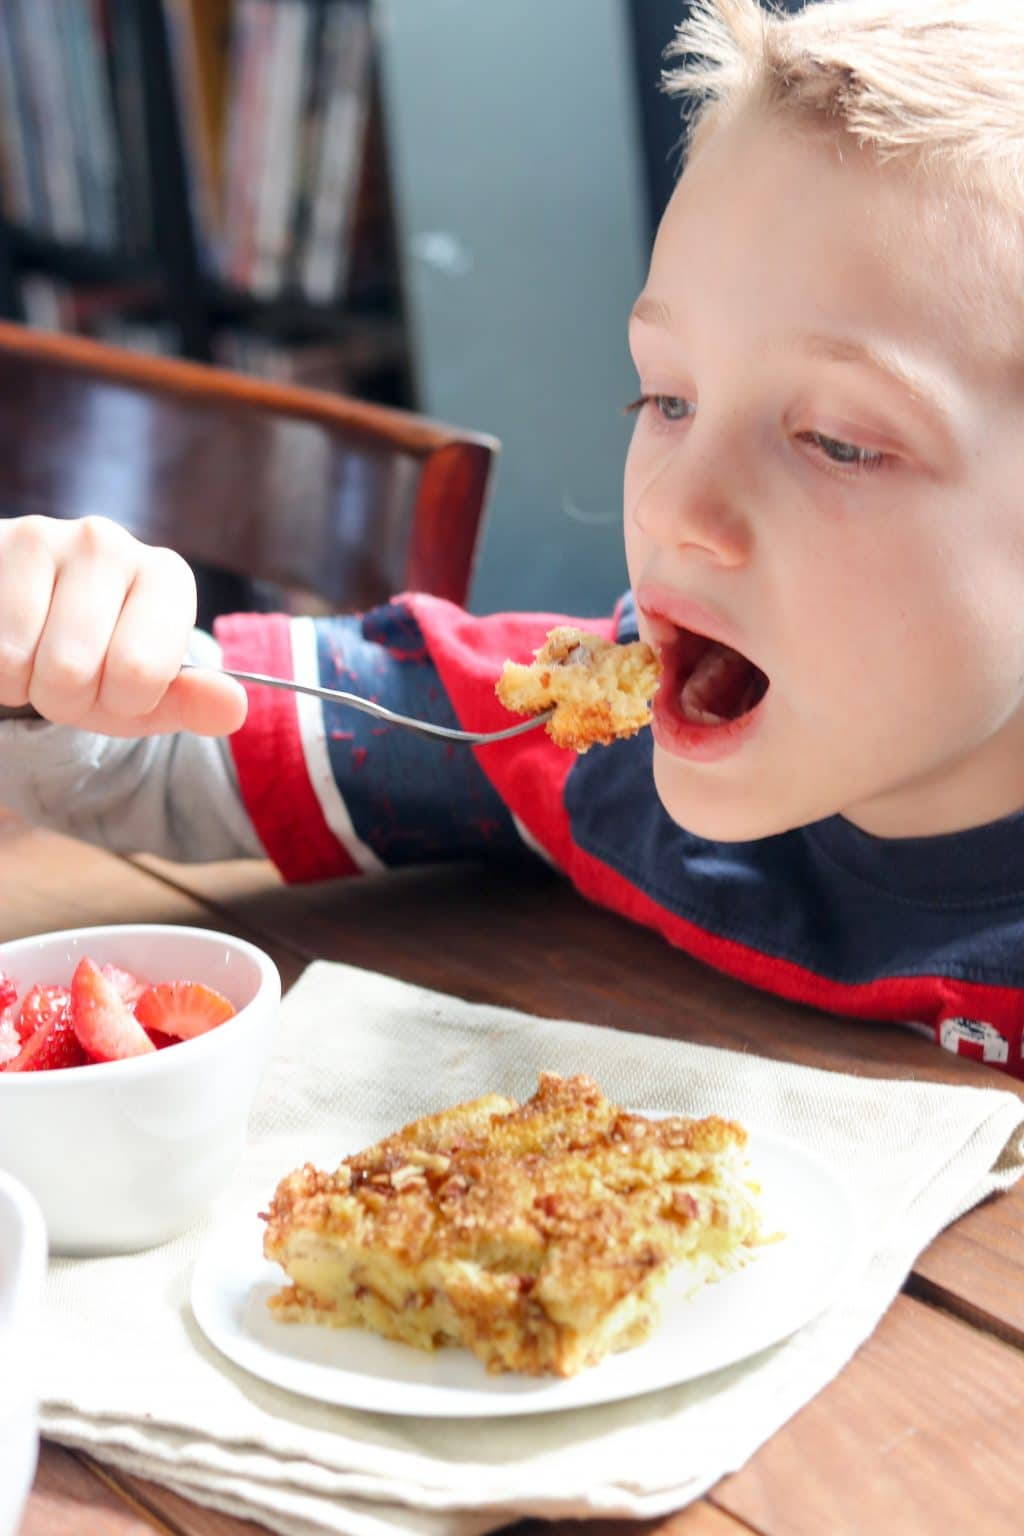 A little boy eating baked french toast